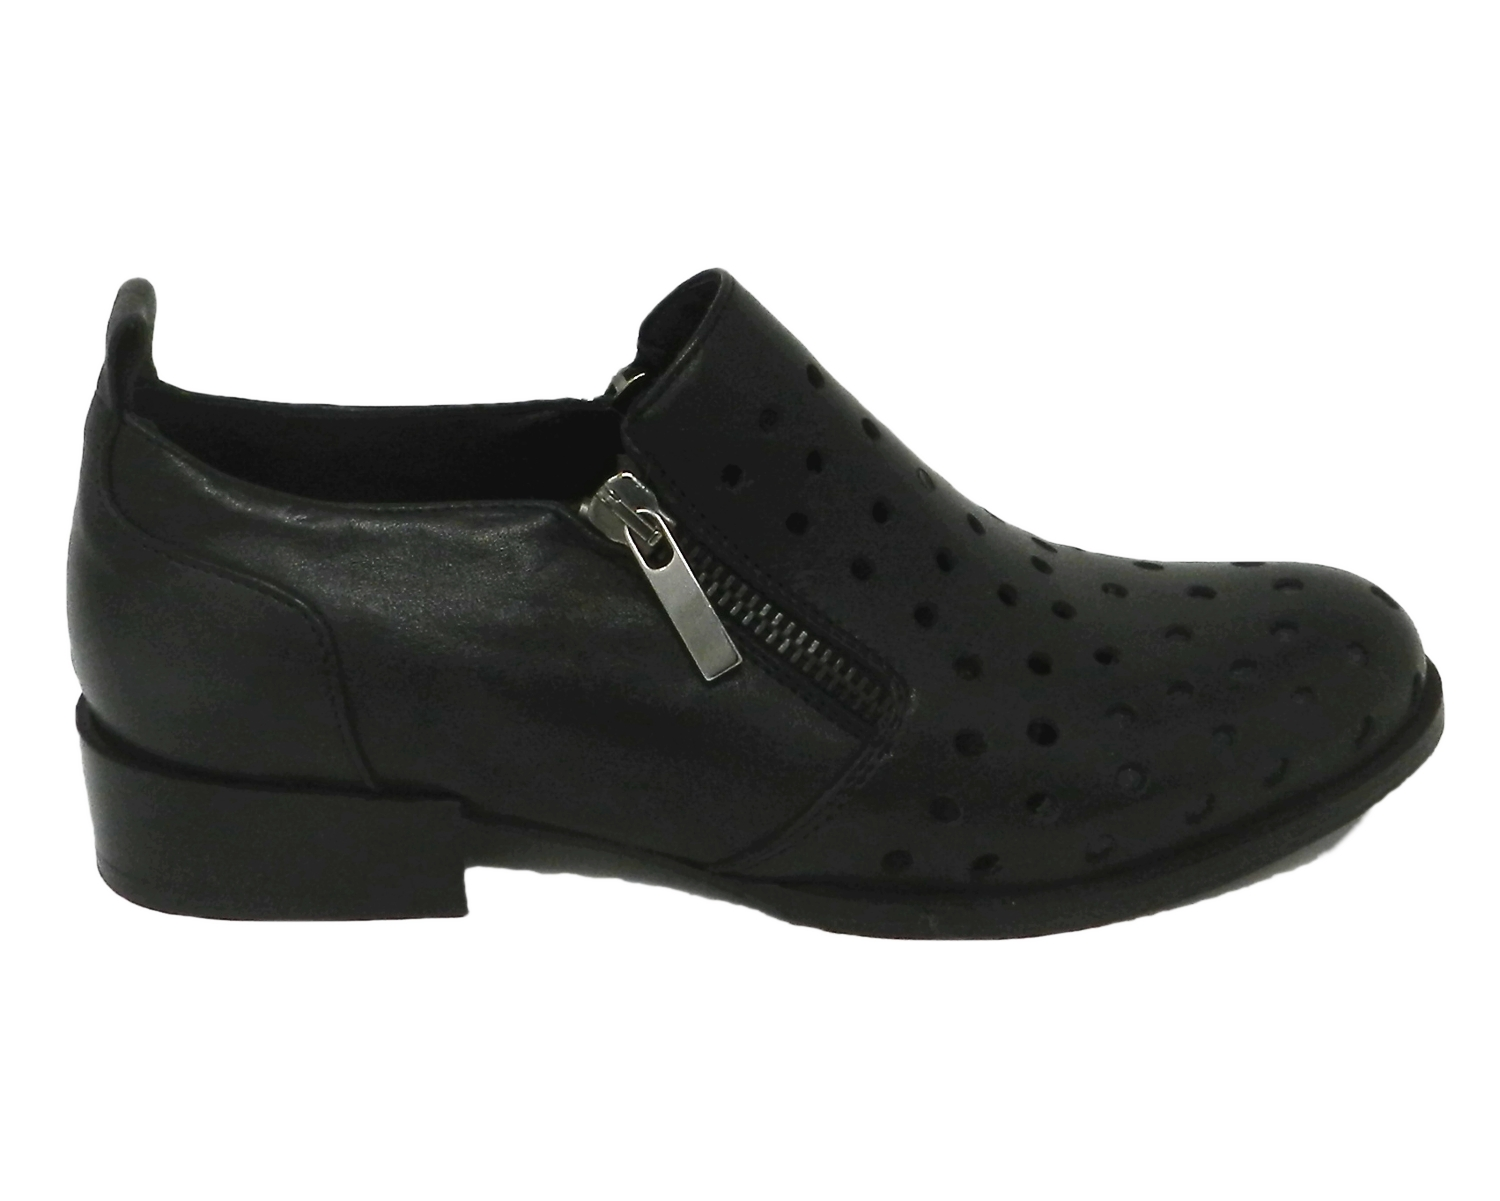 Francesina woman with the skin with a perforated closure at the sides - black